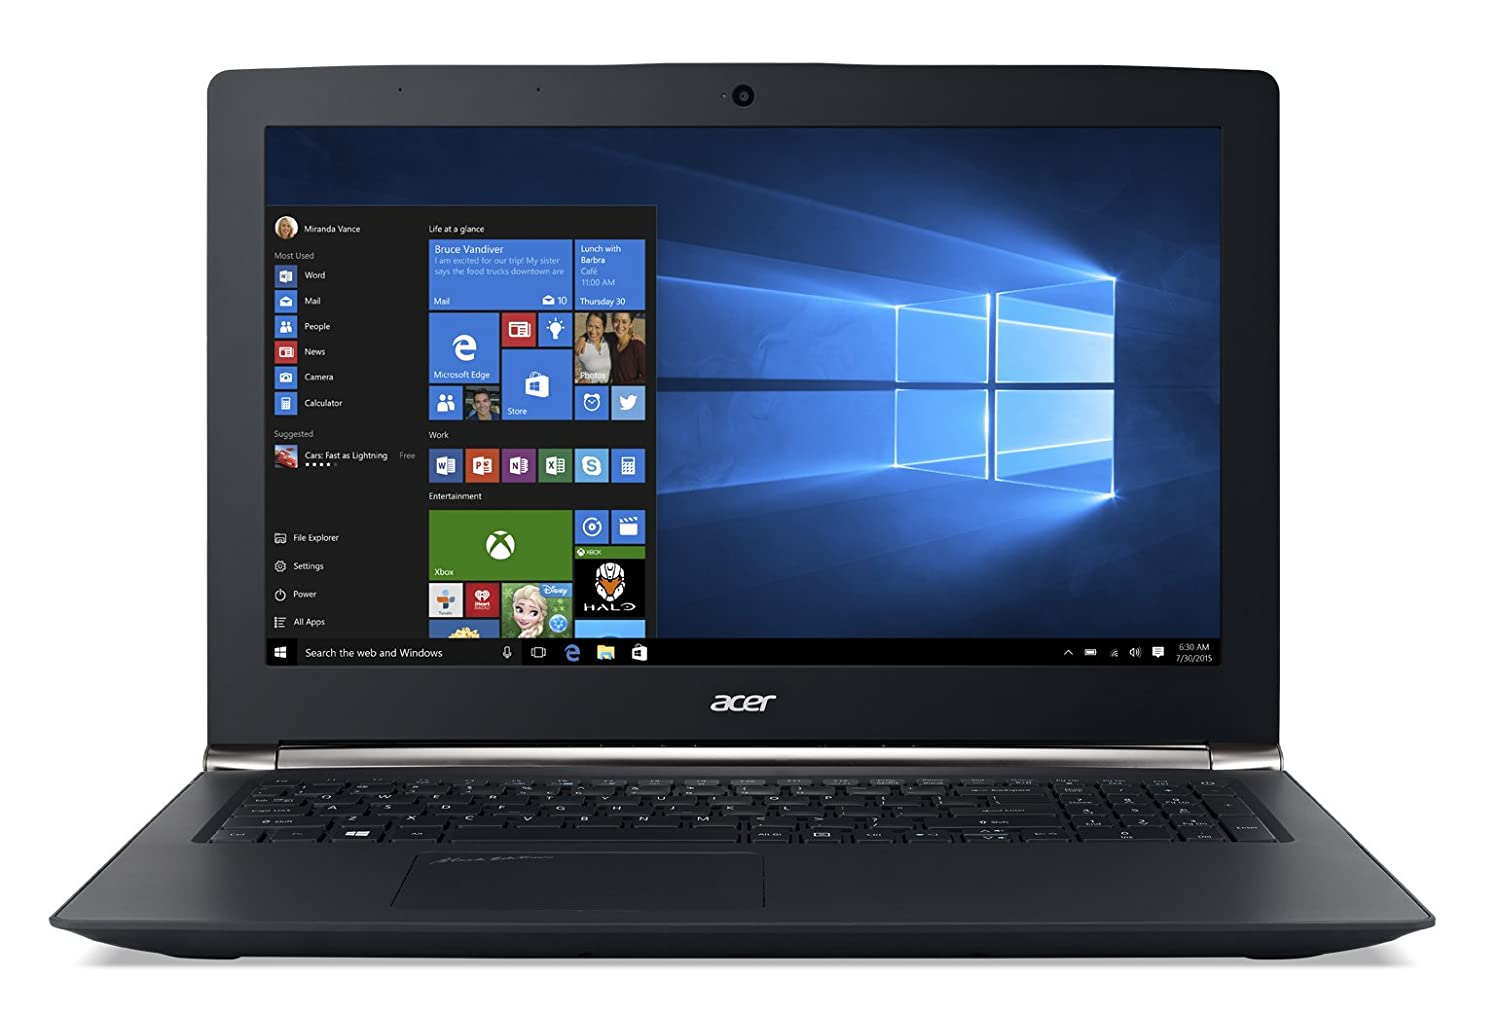 Acer Aspire V15 Nitro Black Edition VN7-592G-71ZL 15.6-inch Full HD,...